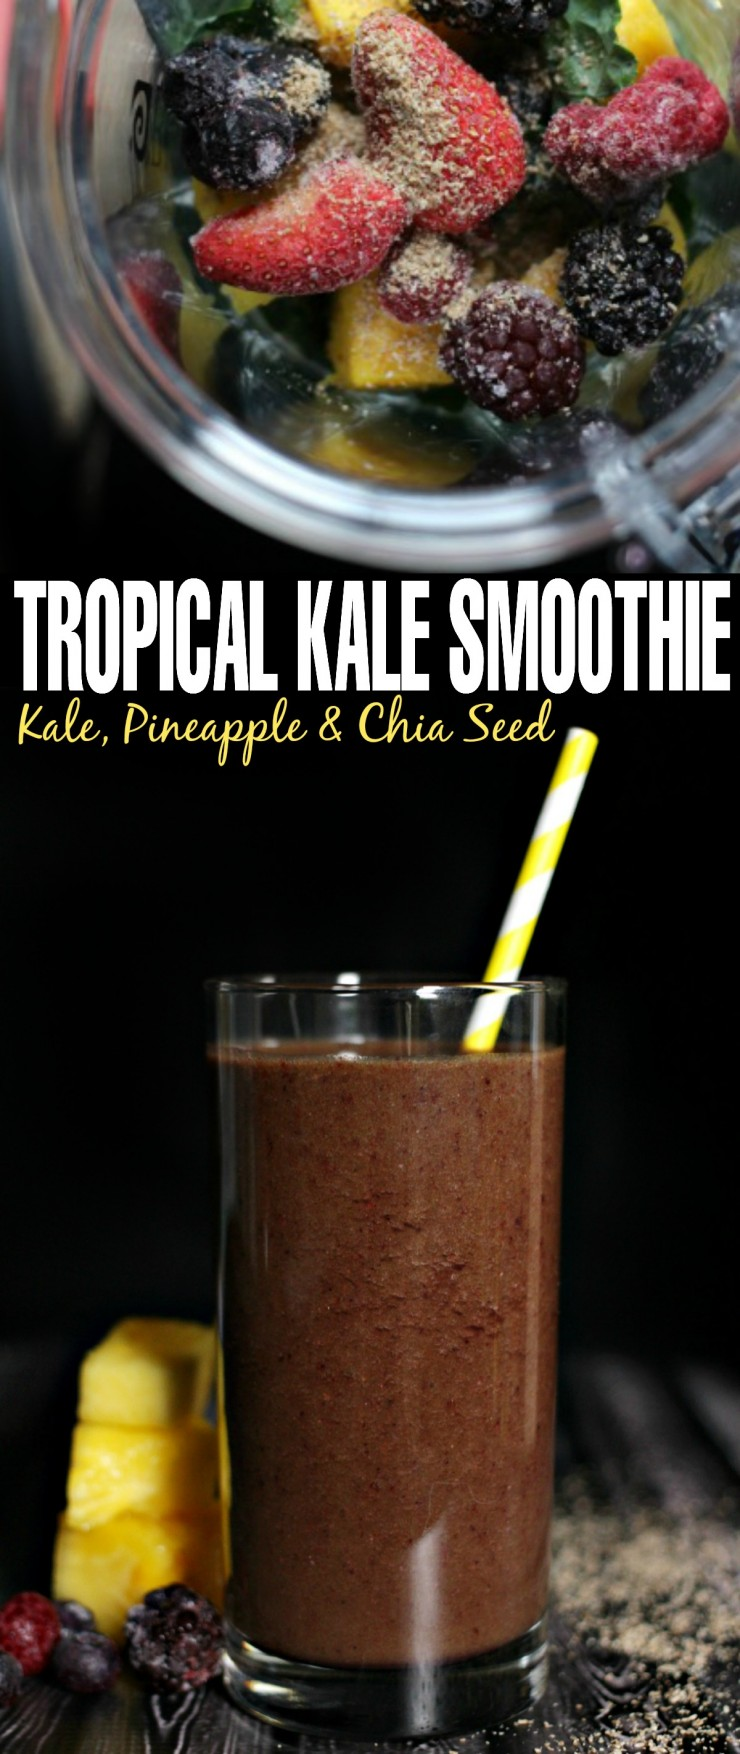 This Kale, Pineapple & Chia Seed Smoothie is a perfect summer beverage for breakfast or just a snack.  It's an amazing tropical kale smoothie without that icky green flavour!